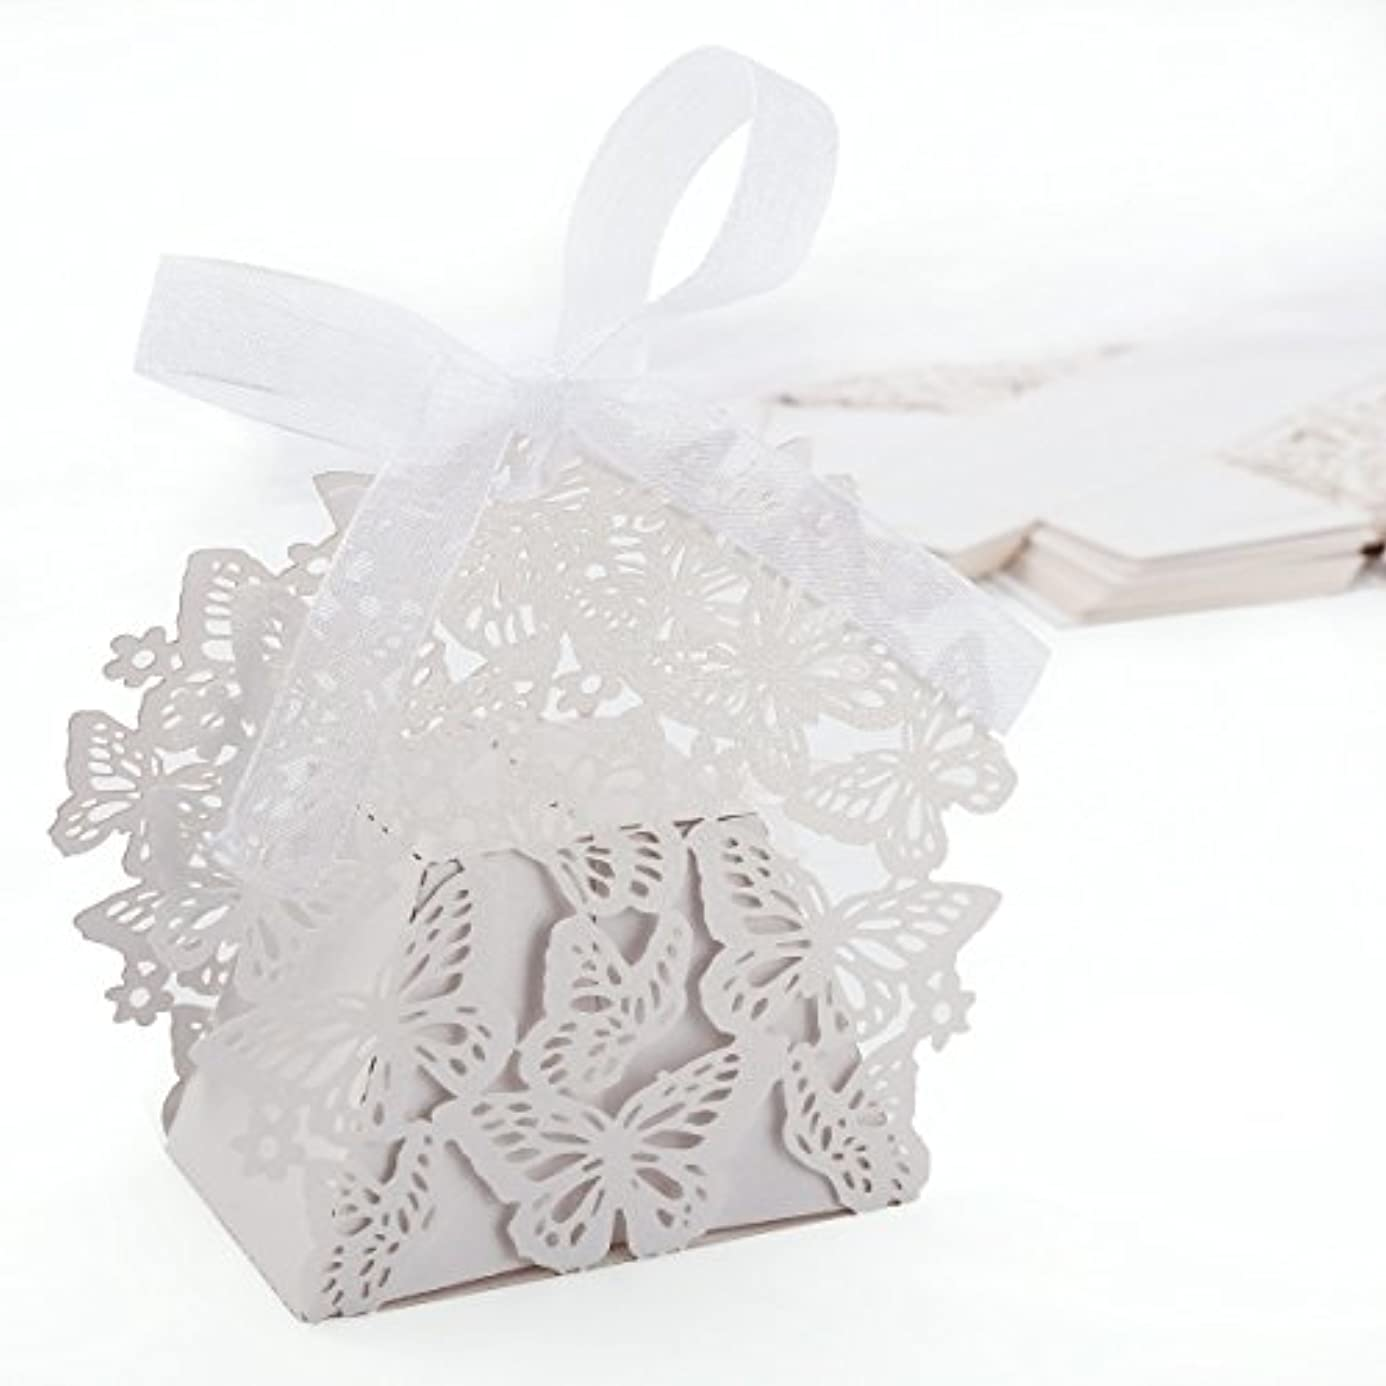 Anladia Butterfly Paper Cut Mini Cupcake Holder Wedding Favor Sweet Cake Gift Candy Wrap Boxes W/ Ribbon Table Decoration ztm0651942